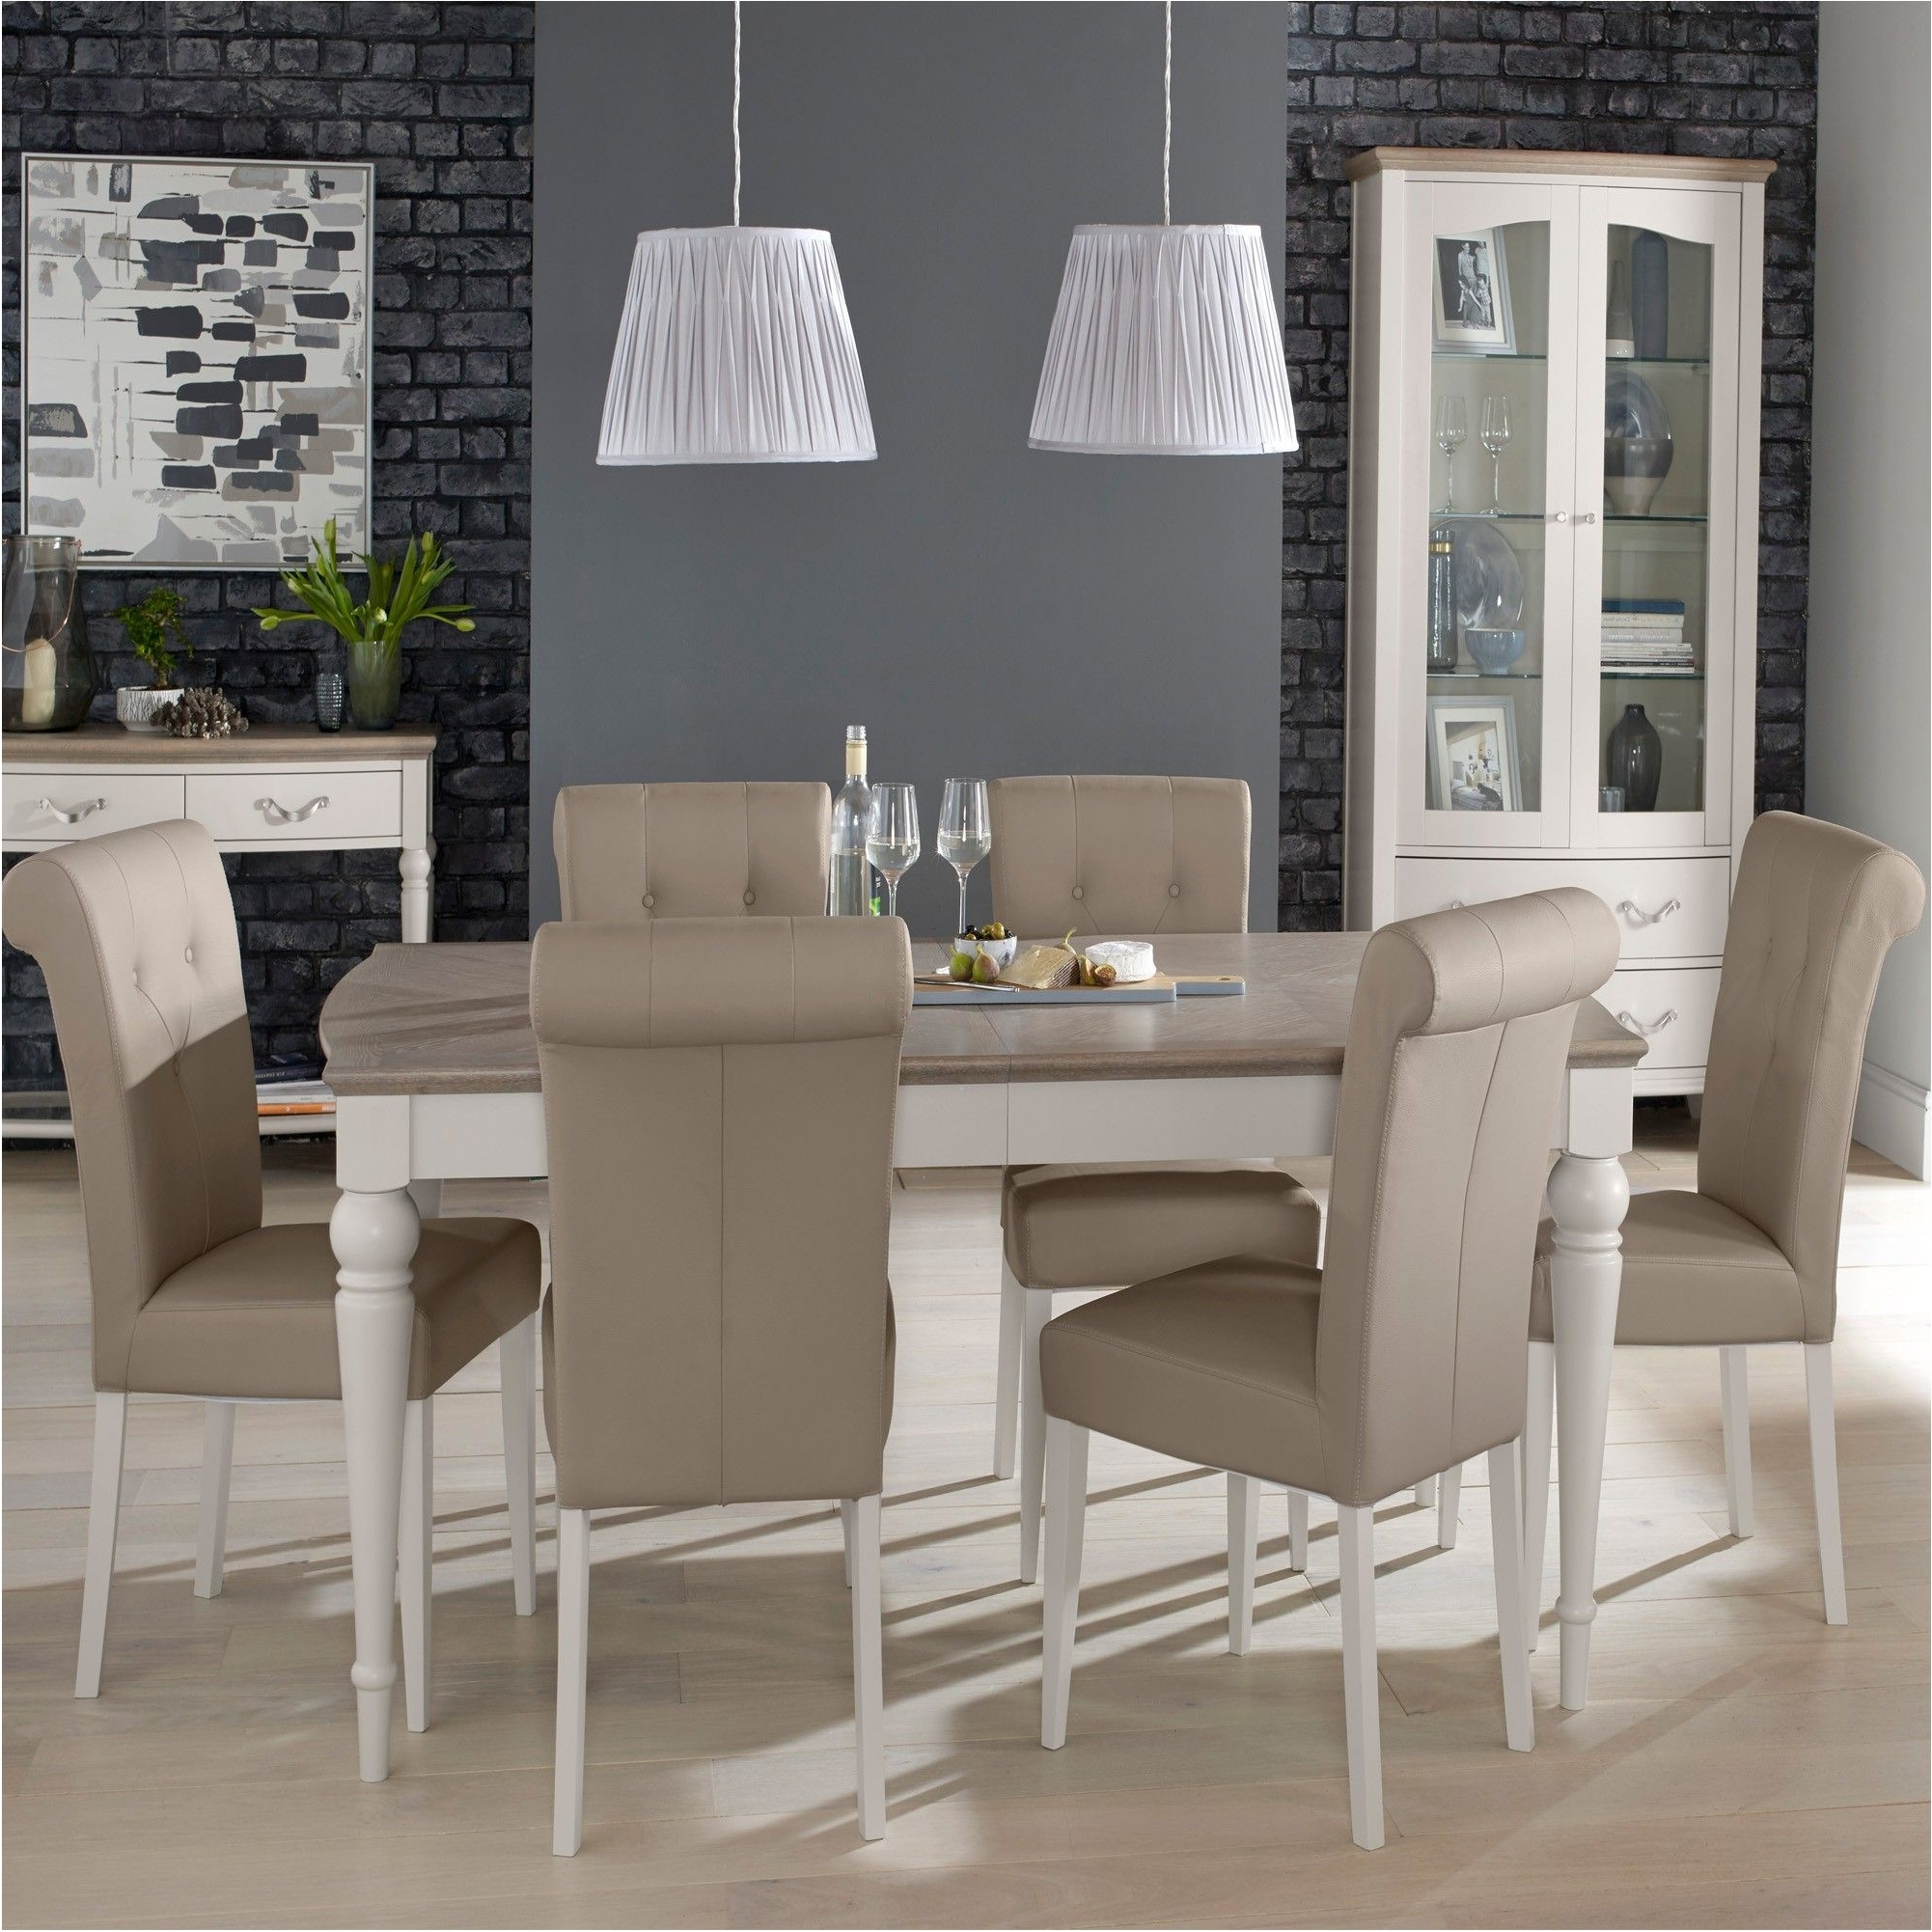 6 Chair Dining Table Sets With Regard To Latest Magnificent Collection Geneva Dining Table And 6 Chairs Dining Sets (Gallery 7 of 25)